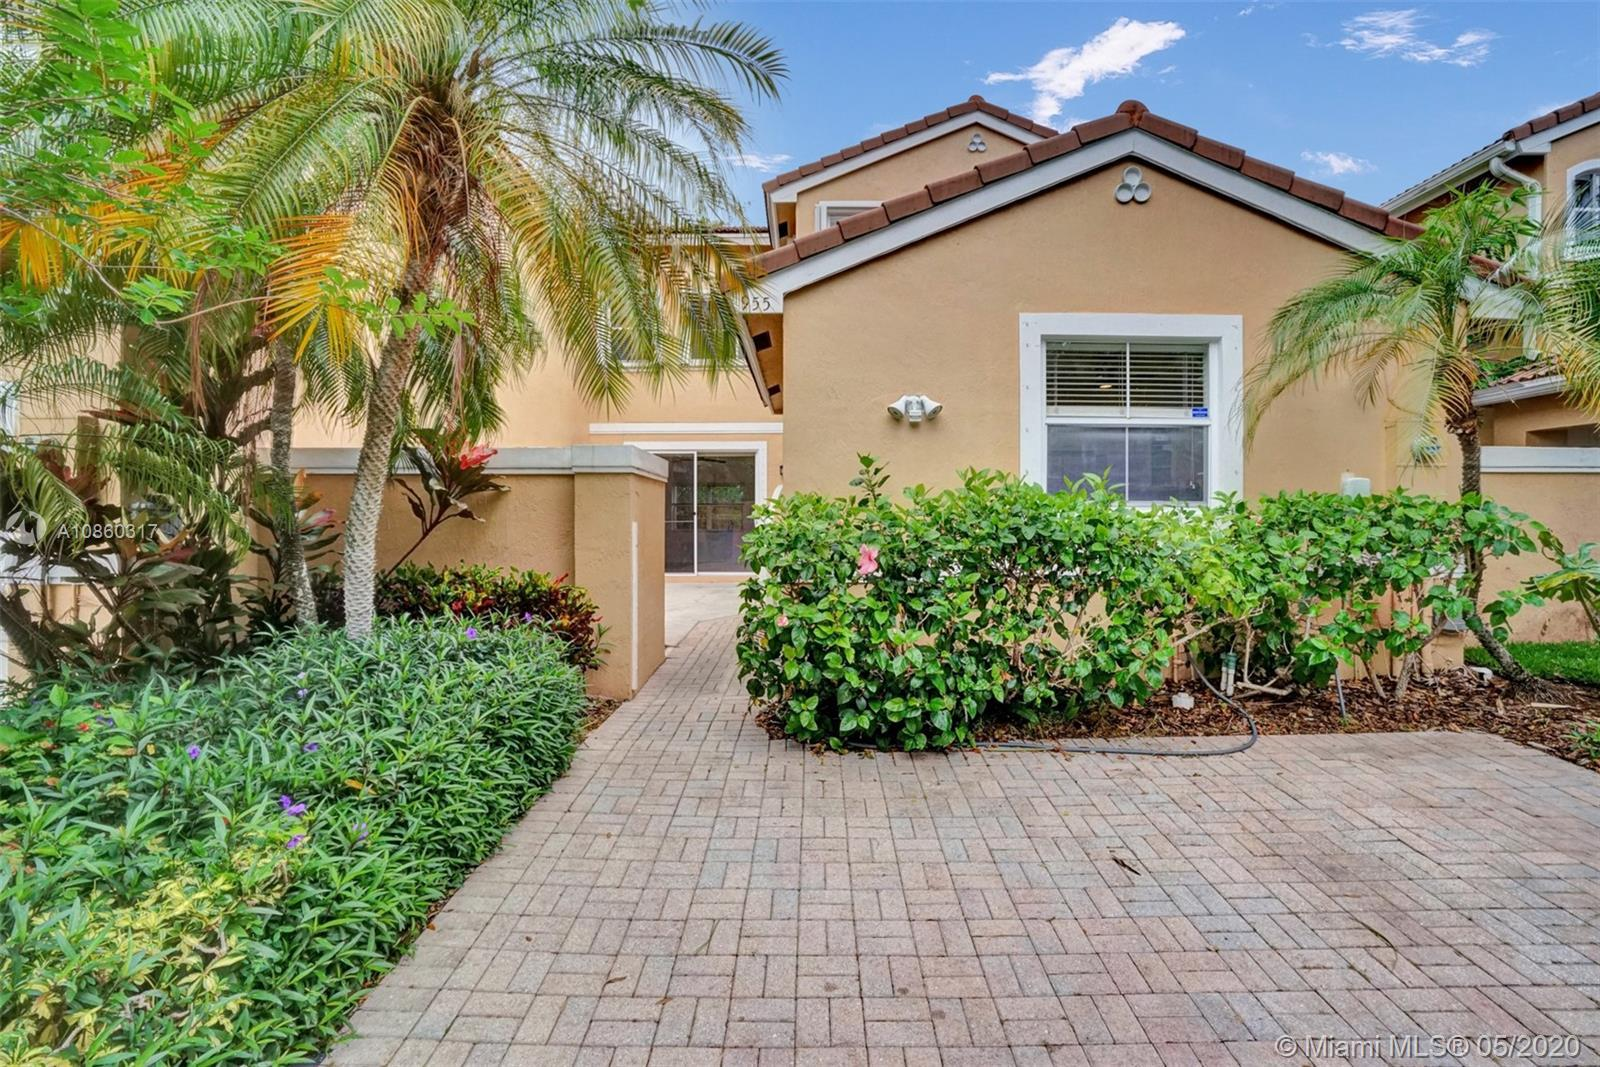 Gorgeous townhouse in West Lake Village a secluded gated community, 3 Bedrooms, 3 Full Bathrooms. O